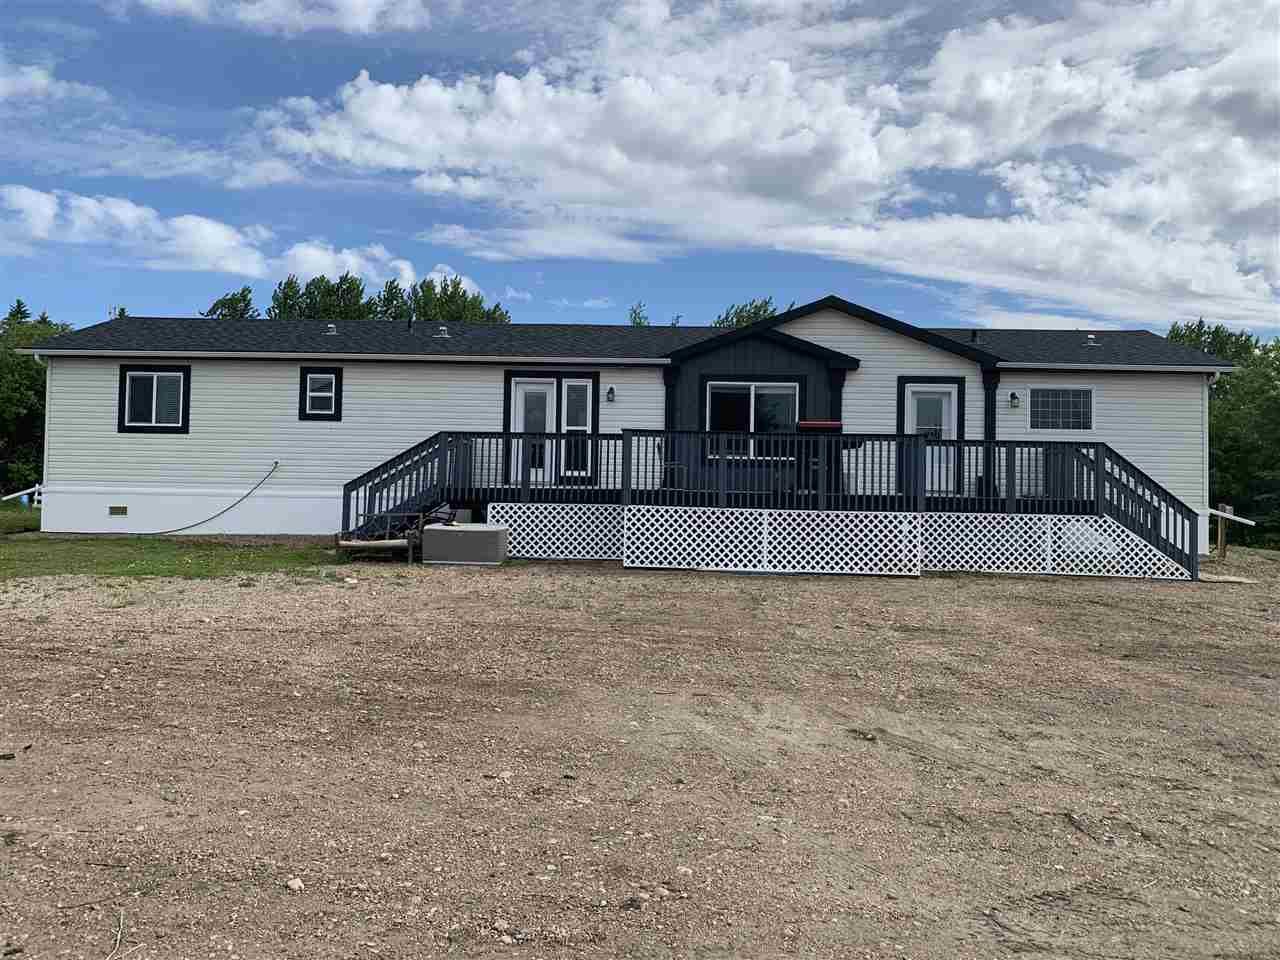 Main Photo: 22418 twp 610: Rural Thorhild County House for sale : MLS®# E4161629